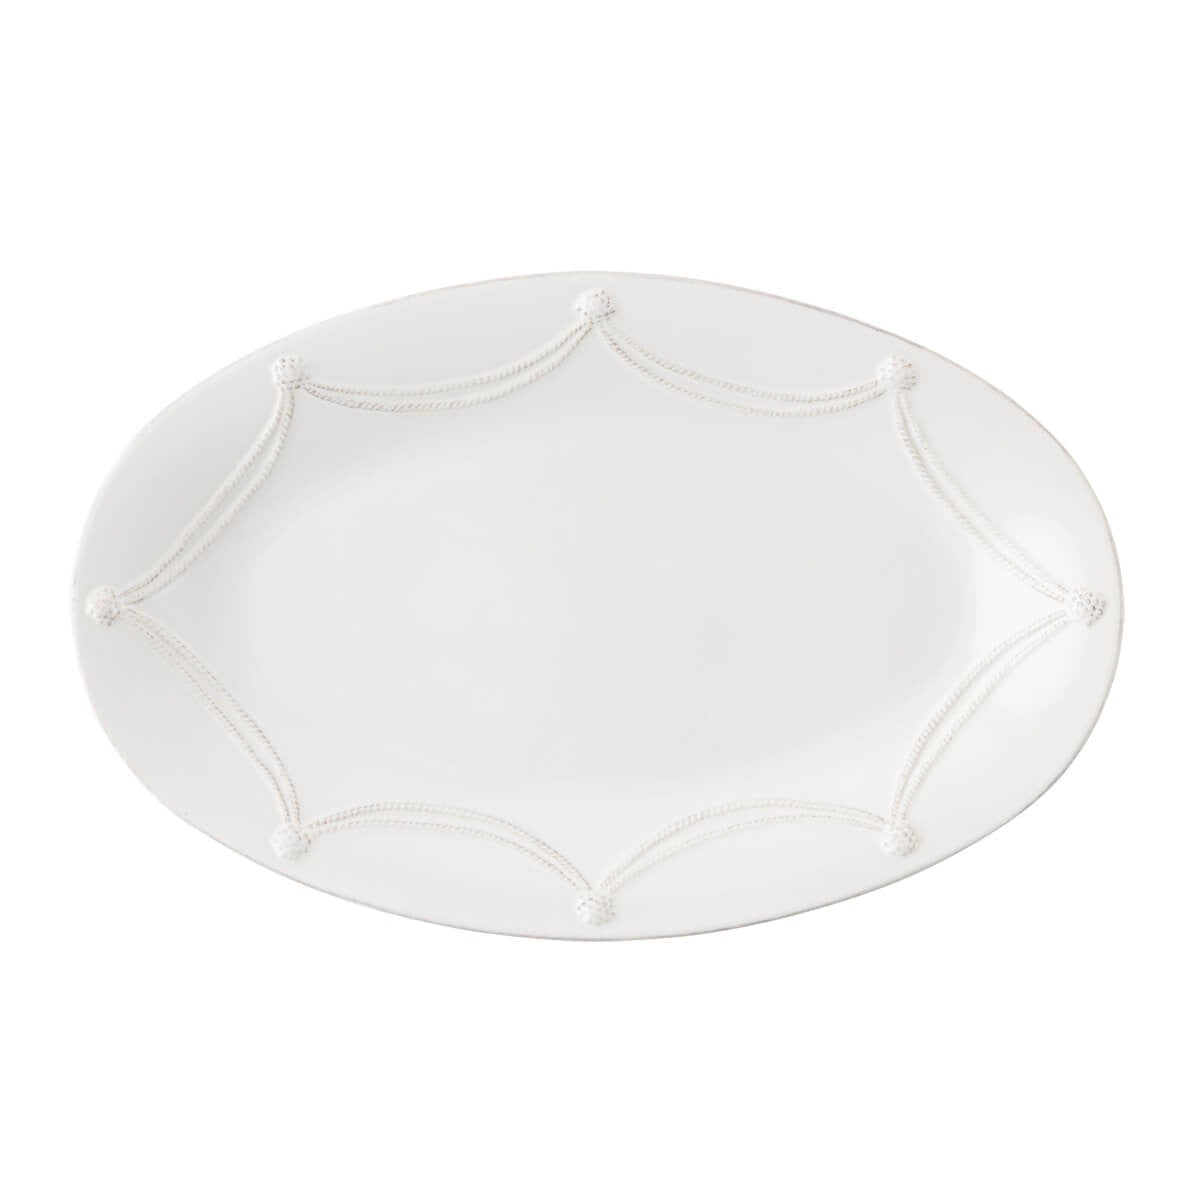 "Juliska - Berry & Thread Whitewash 18"" Oval Platter"